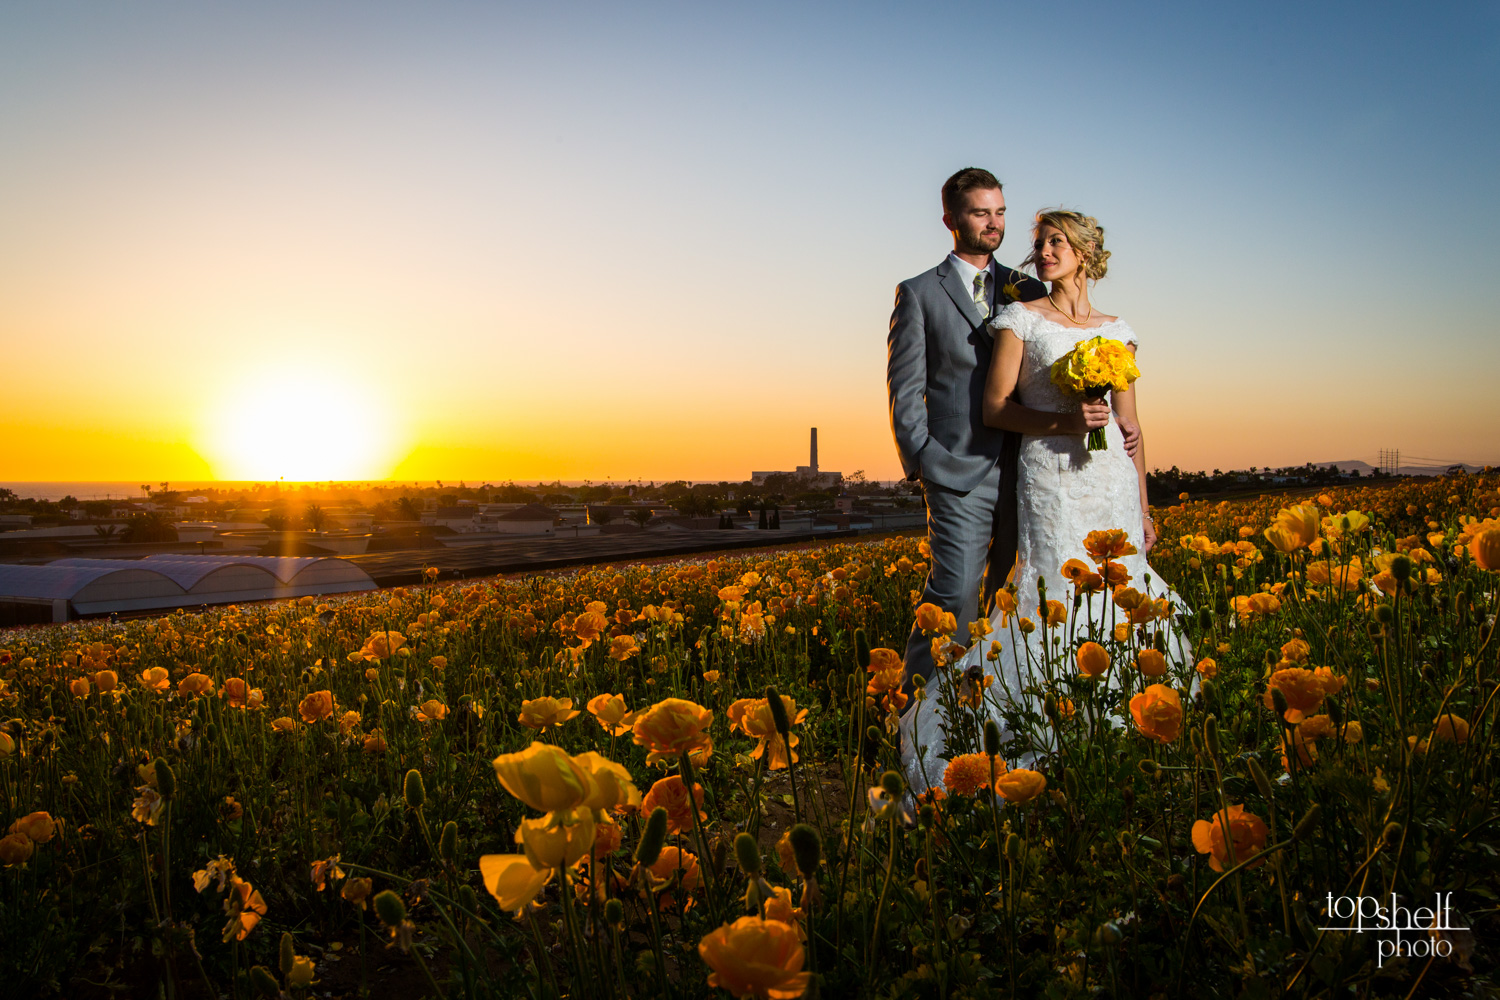 carlsbad-flower-fields-wedding-san-diego-top-shelf-photo-17.jpg